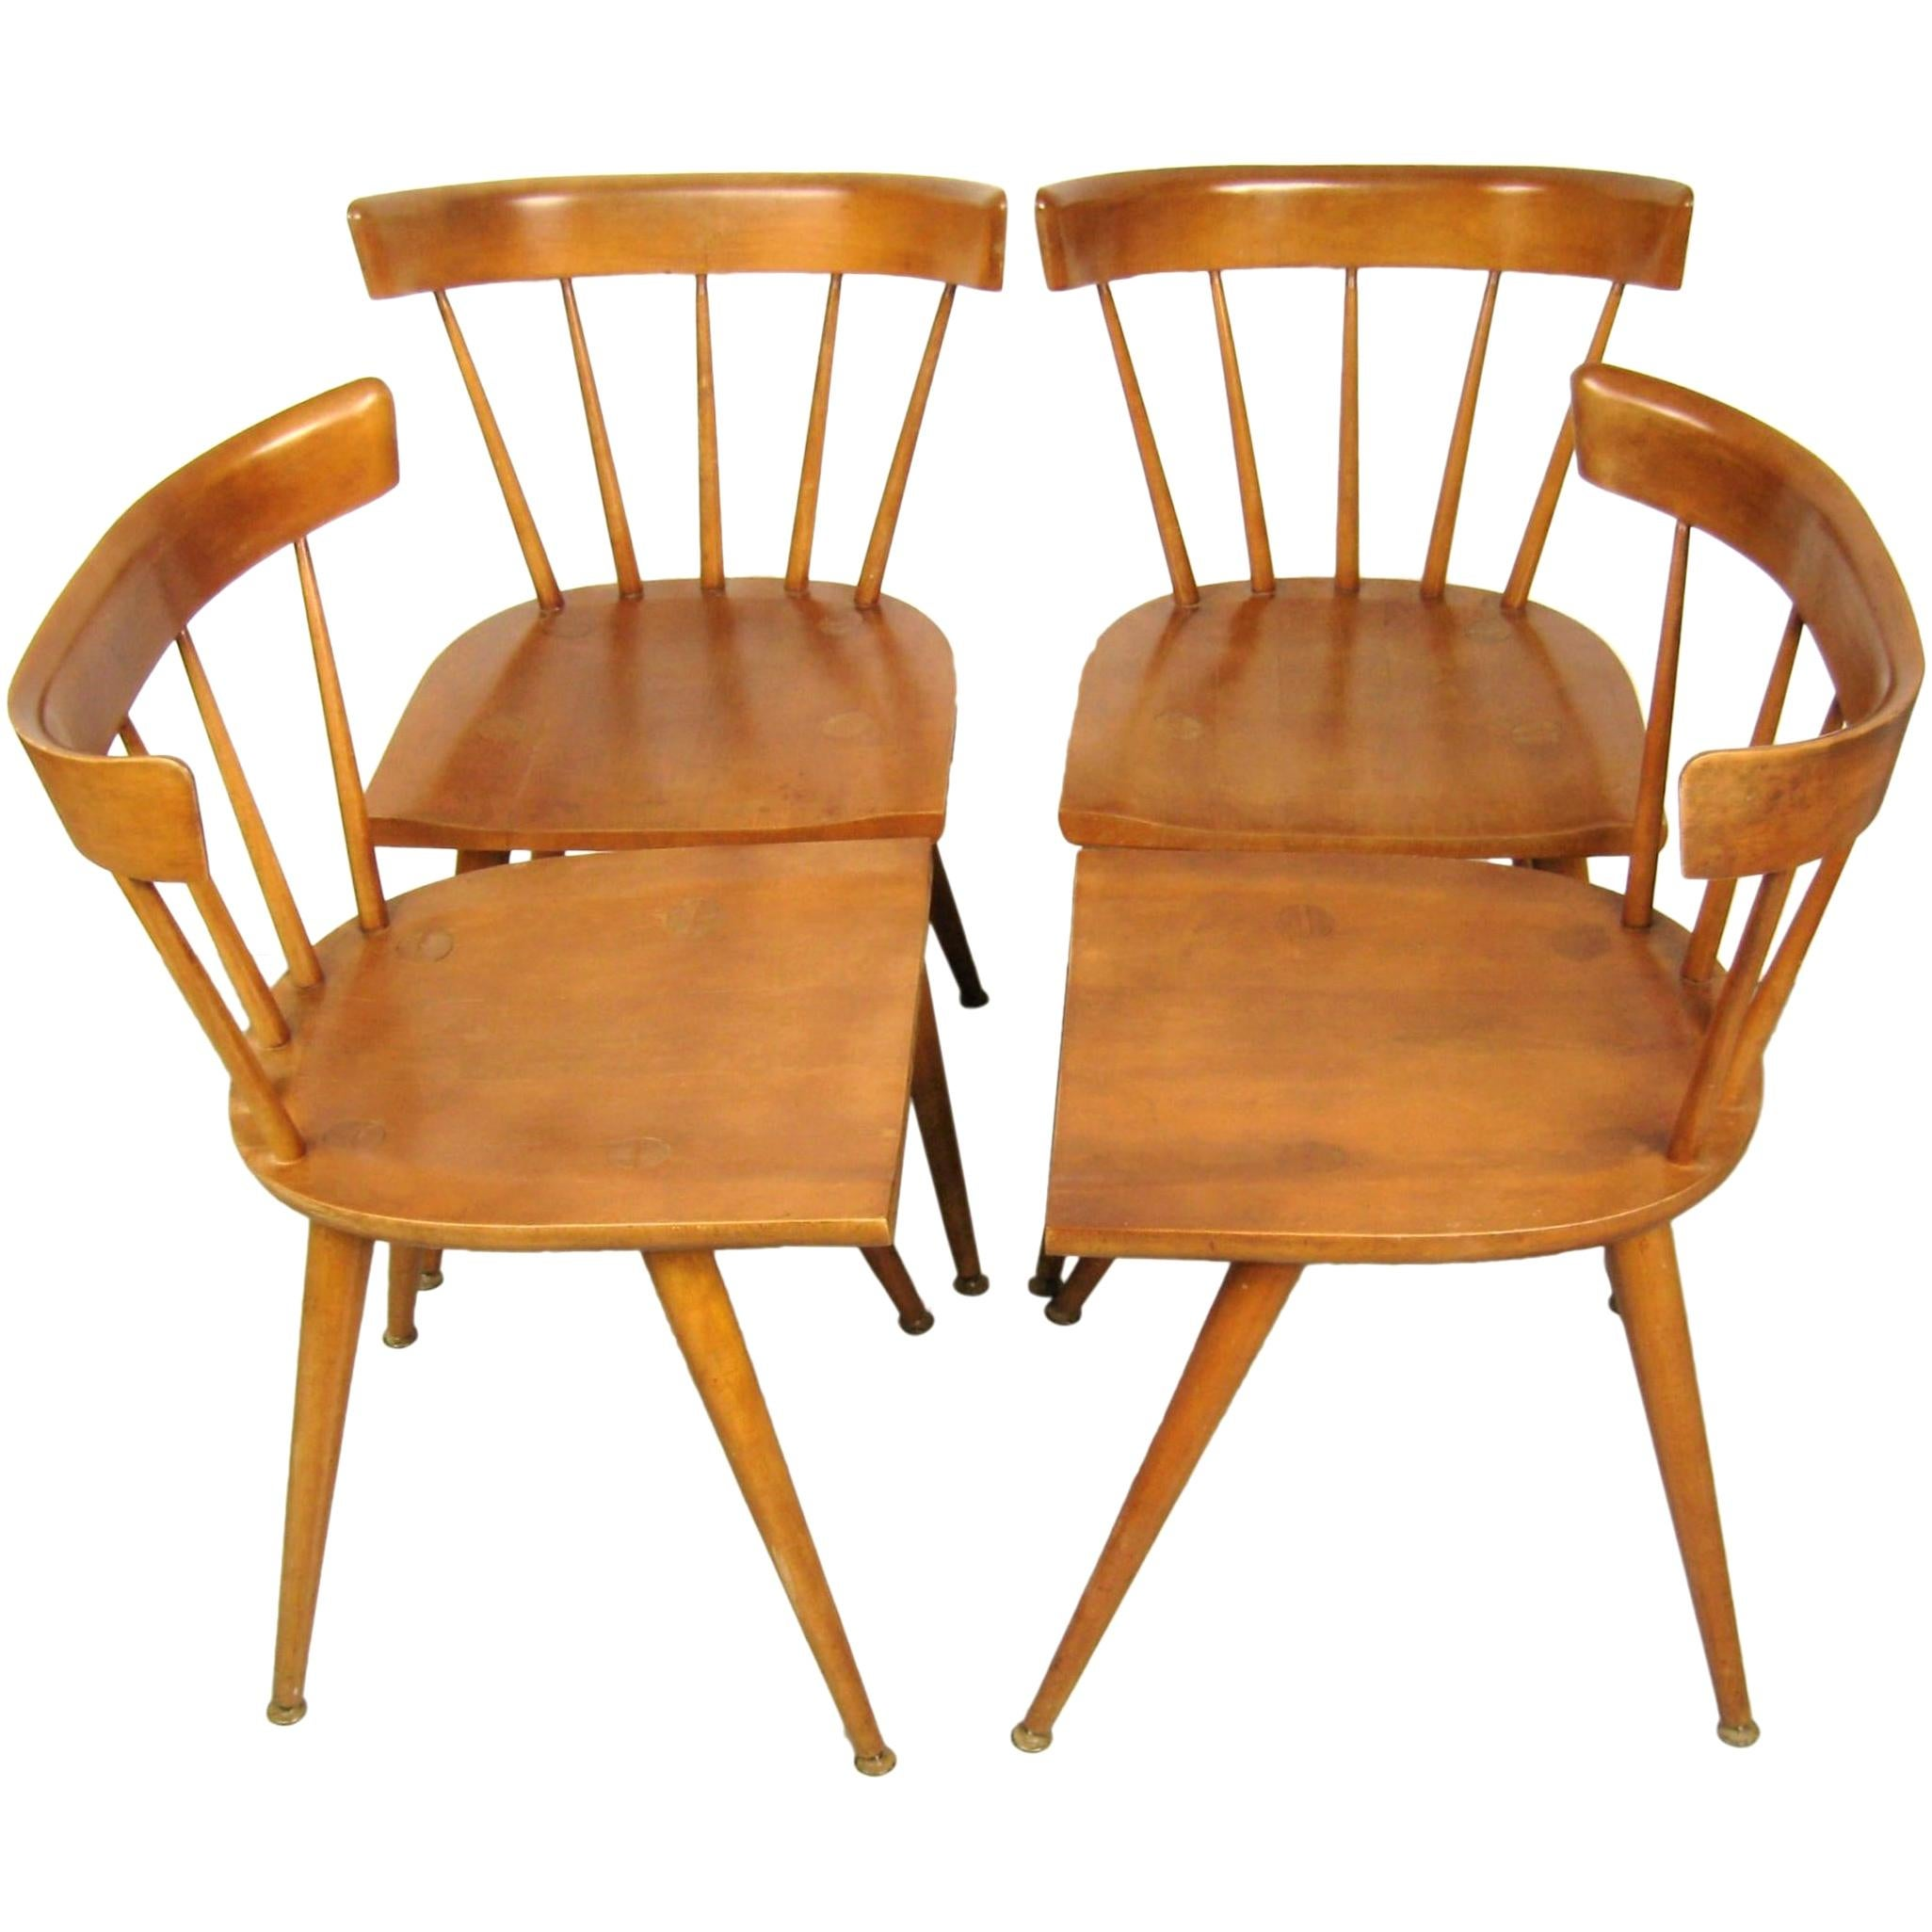 Paul McCobb Dining Chairs for Planner Group, Set of 4 Mid Century Modern